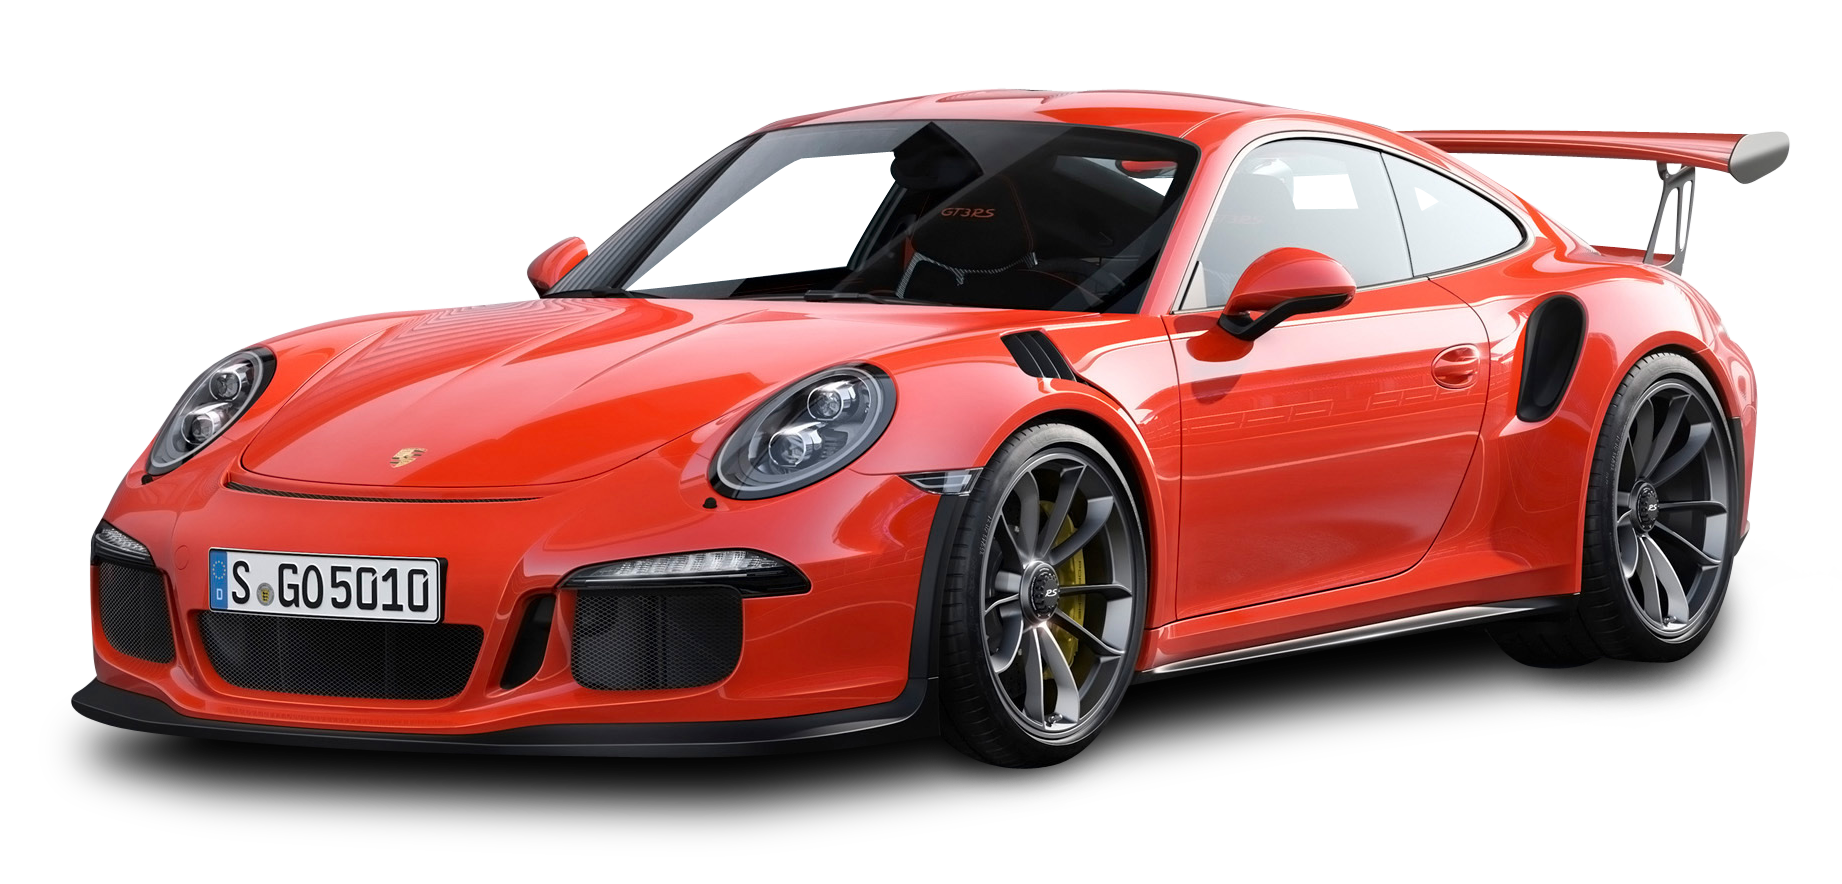 Red Porsche 911 GT3 RS 4 Car PNG Image.